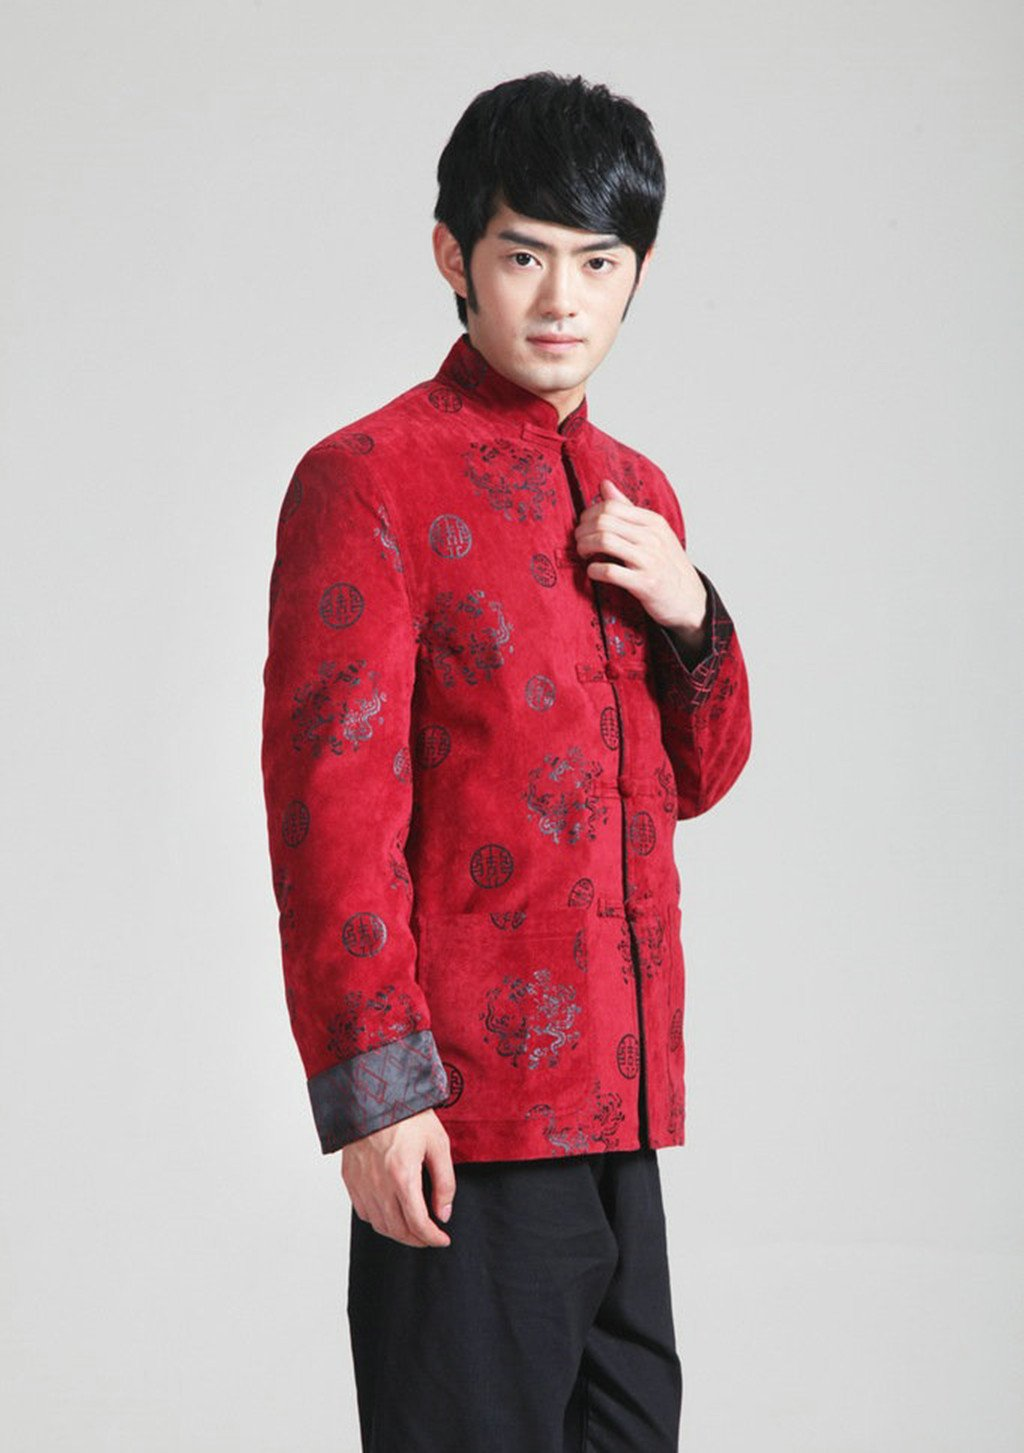 Wool Tang Suits Retro Jackets cotton-padded jacket Business Jackets Full Dress by Winter Tang Suit (Image #3)